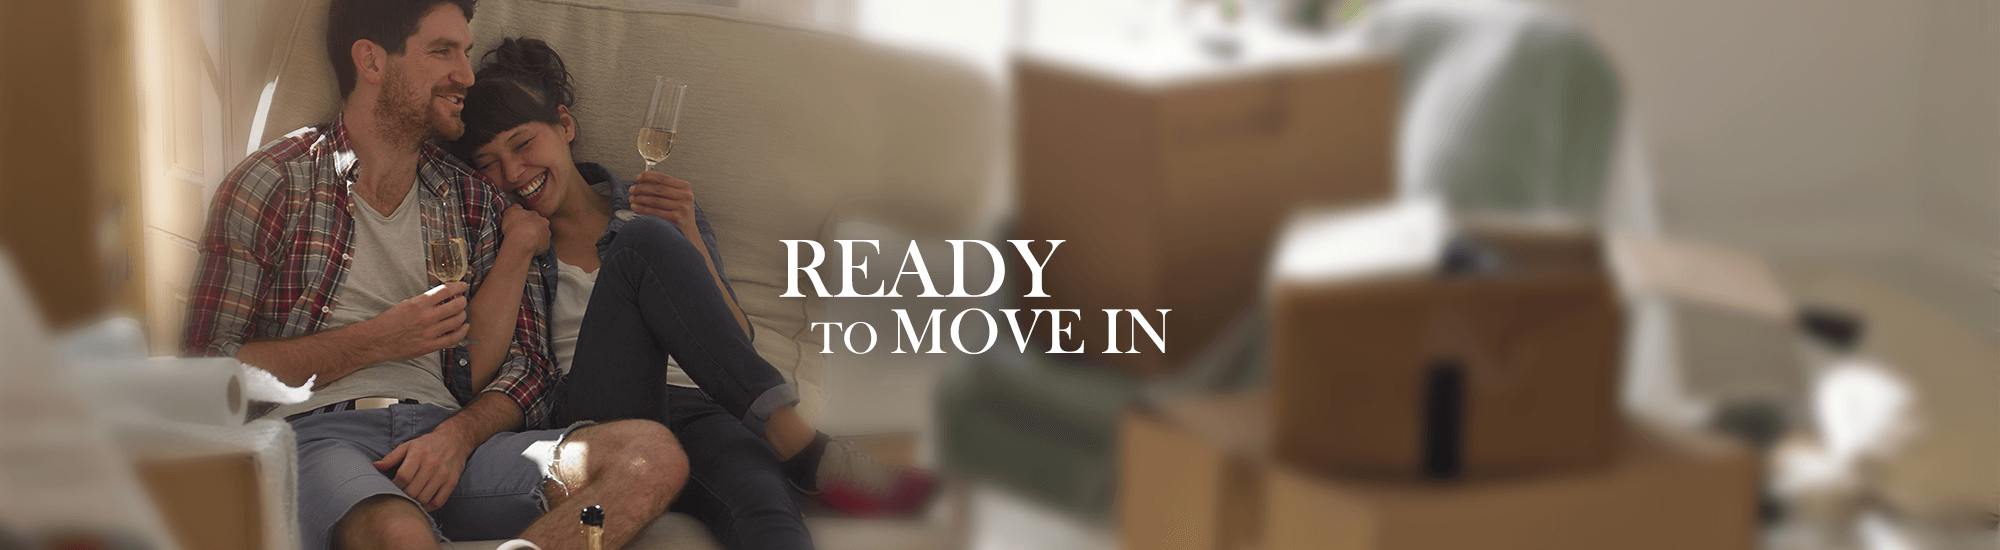 ready-to-move